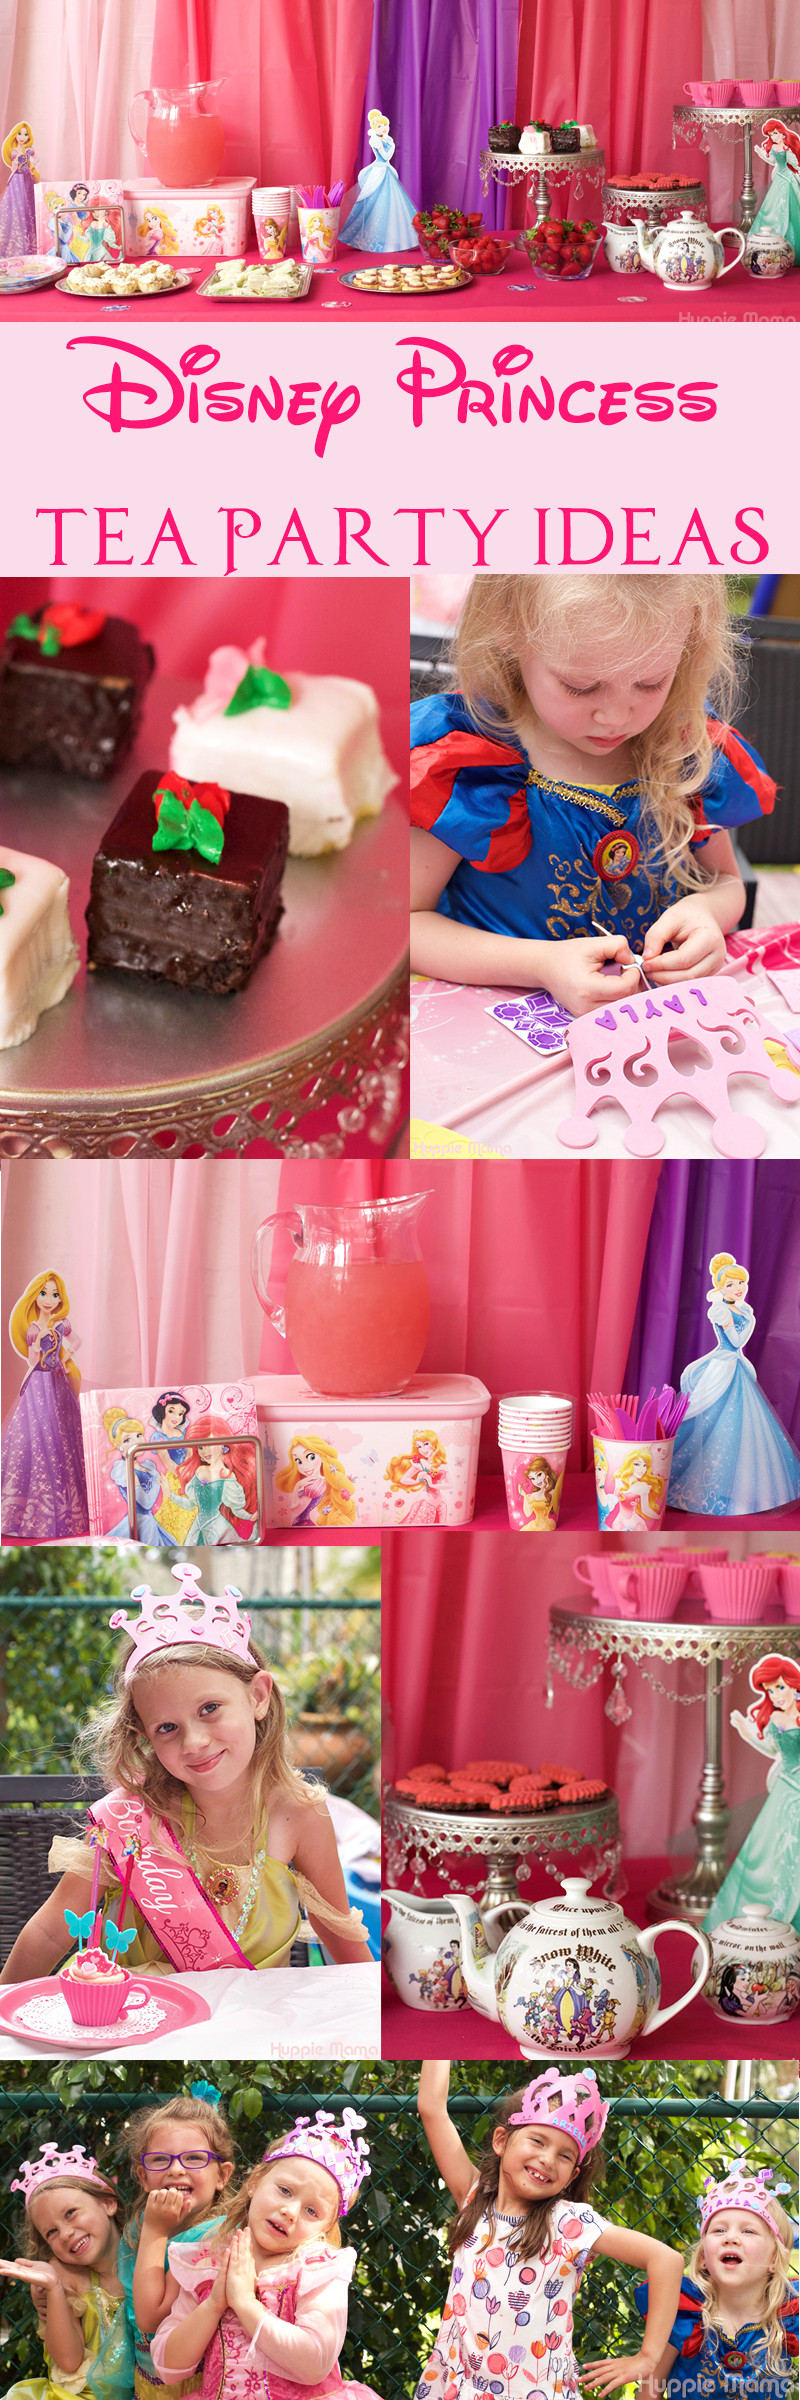 Princess Tea Party Birthday Ideas  Disney Princess Tea Party Ideas Our Potluck Family